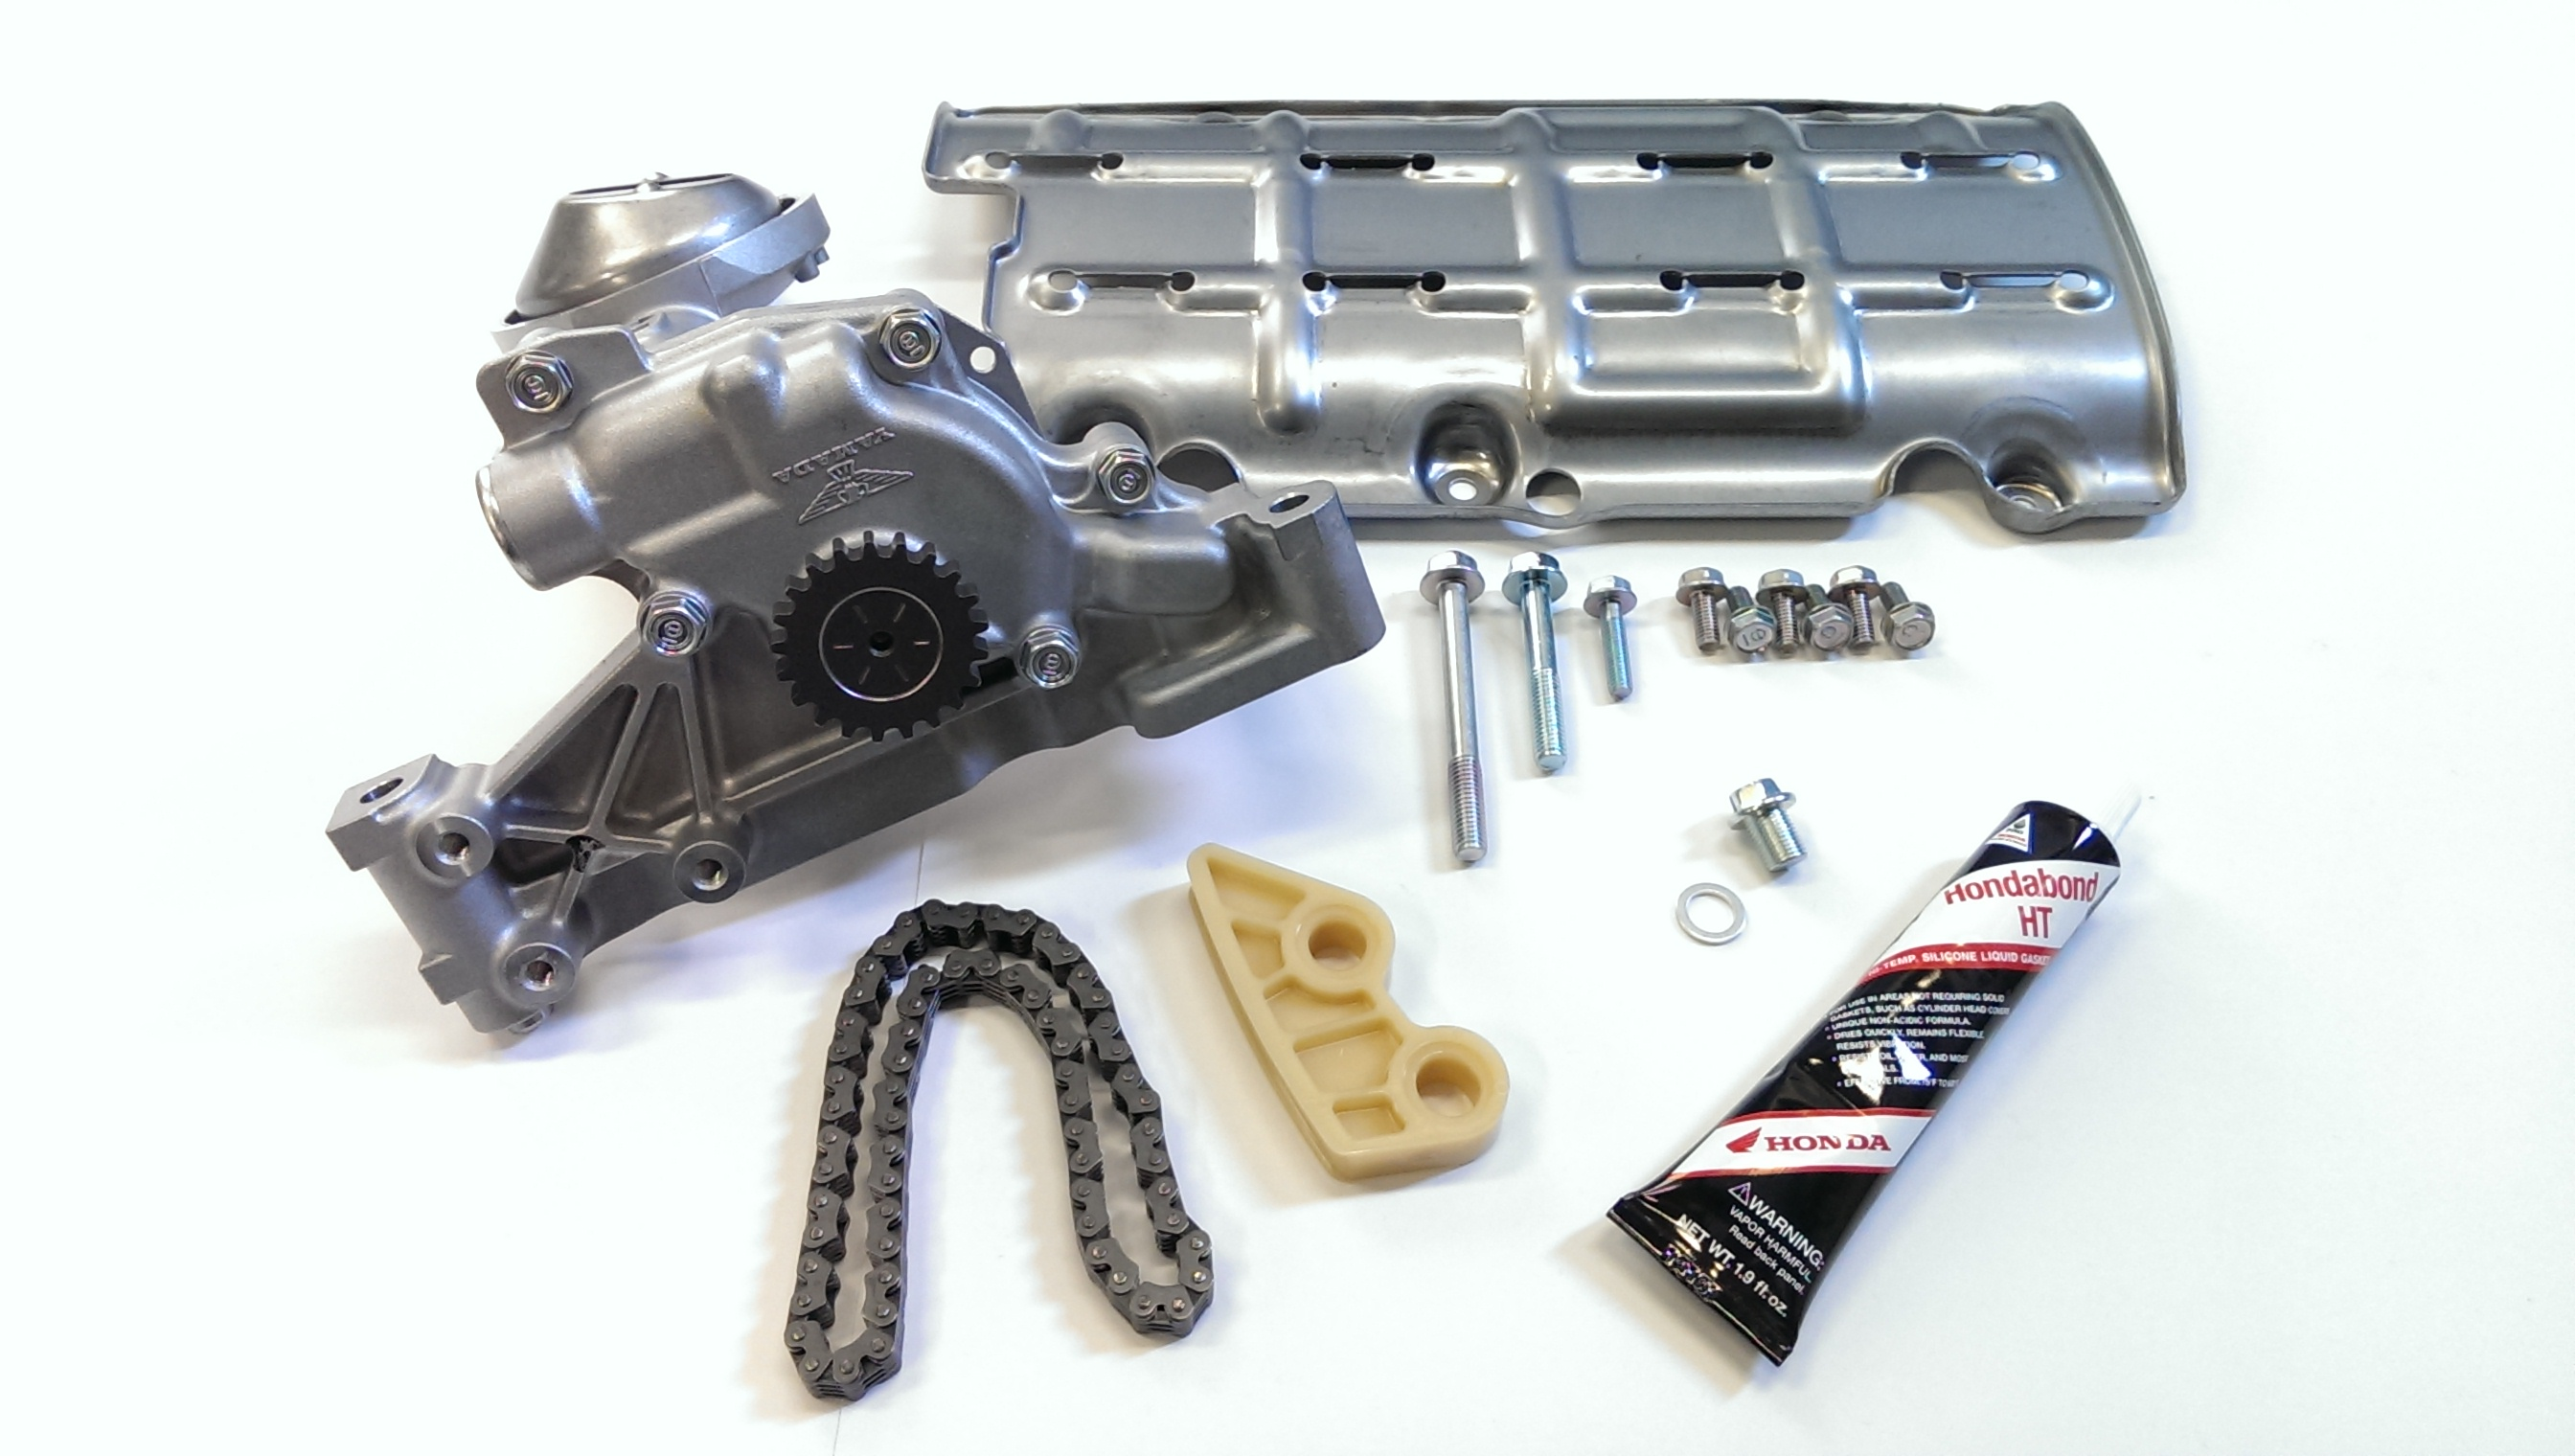 K20 Rsx Type S Oil Pump Kit Afhkparts Honda Acura